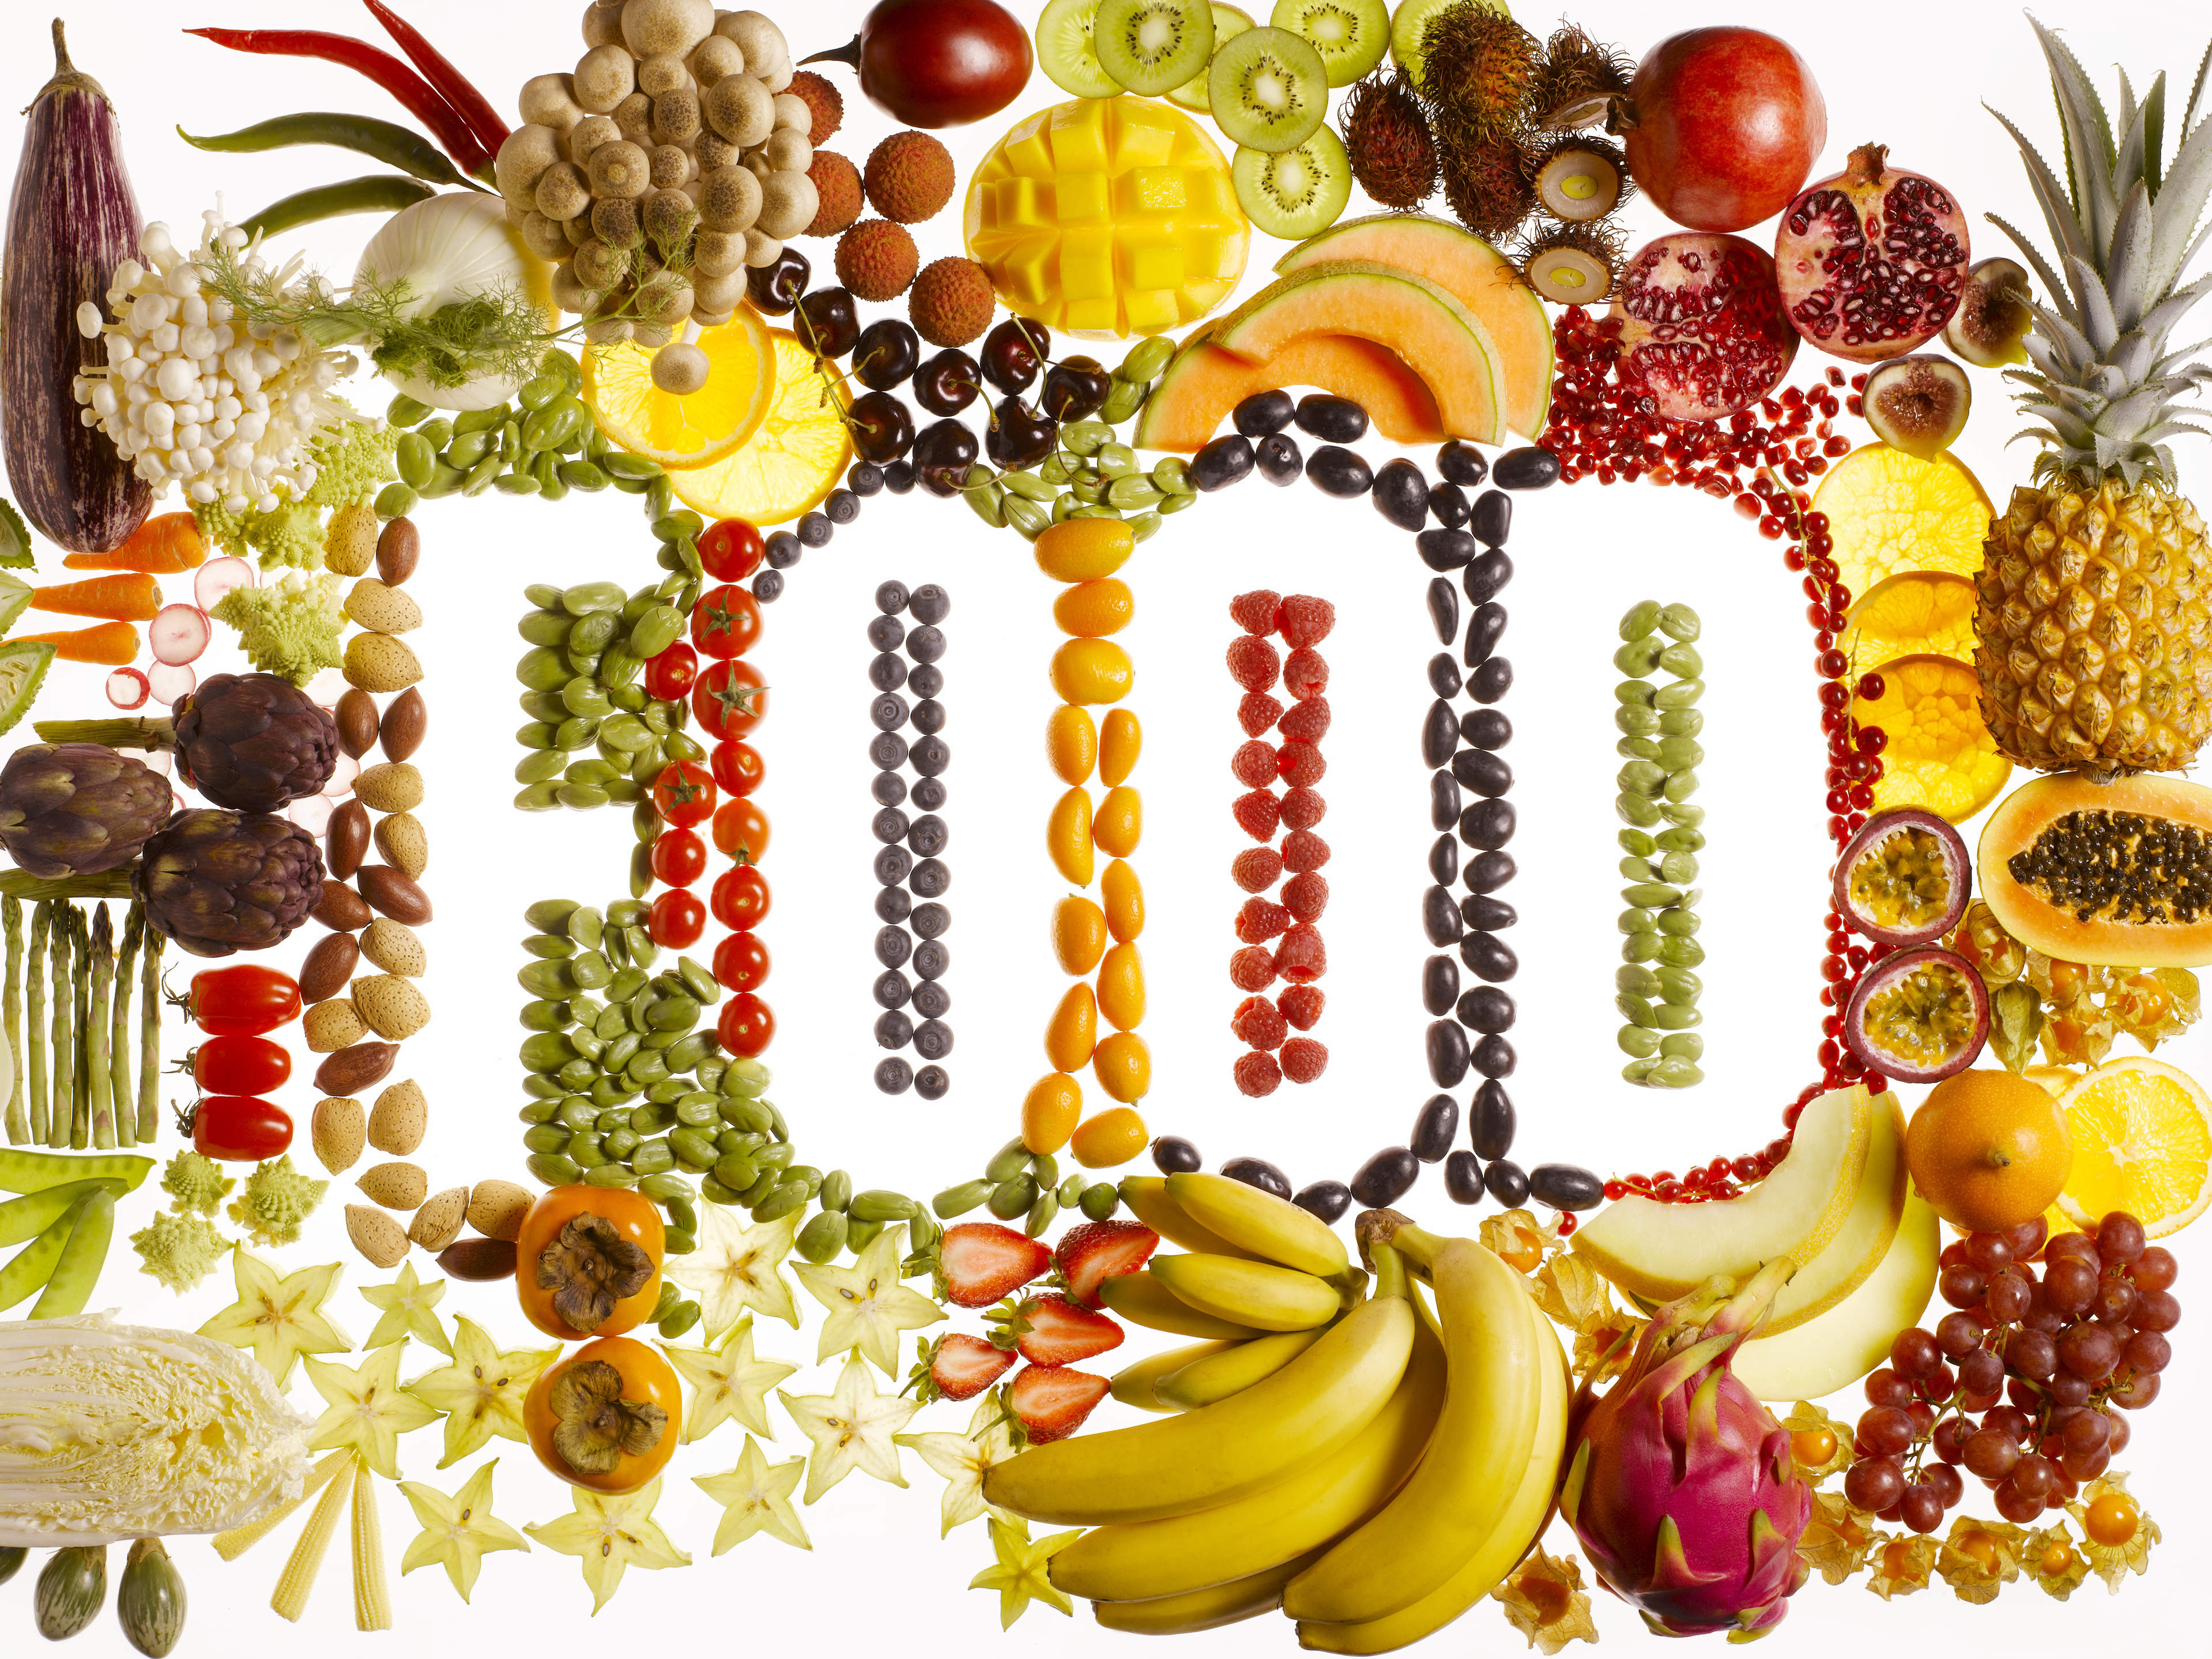 Top 8 Healthiest SuperFoods In The World